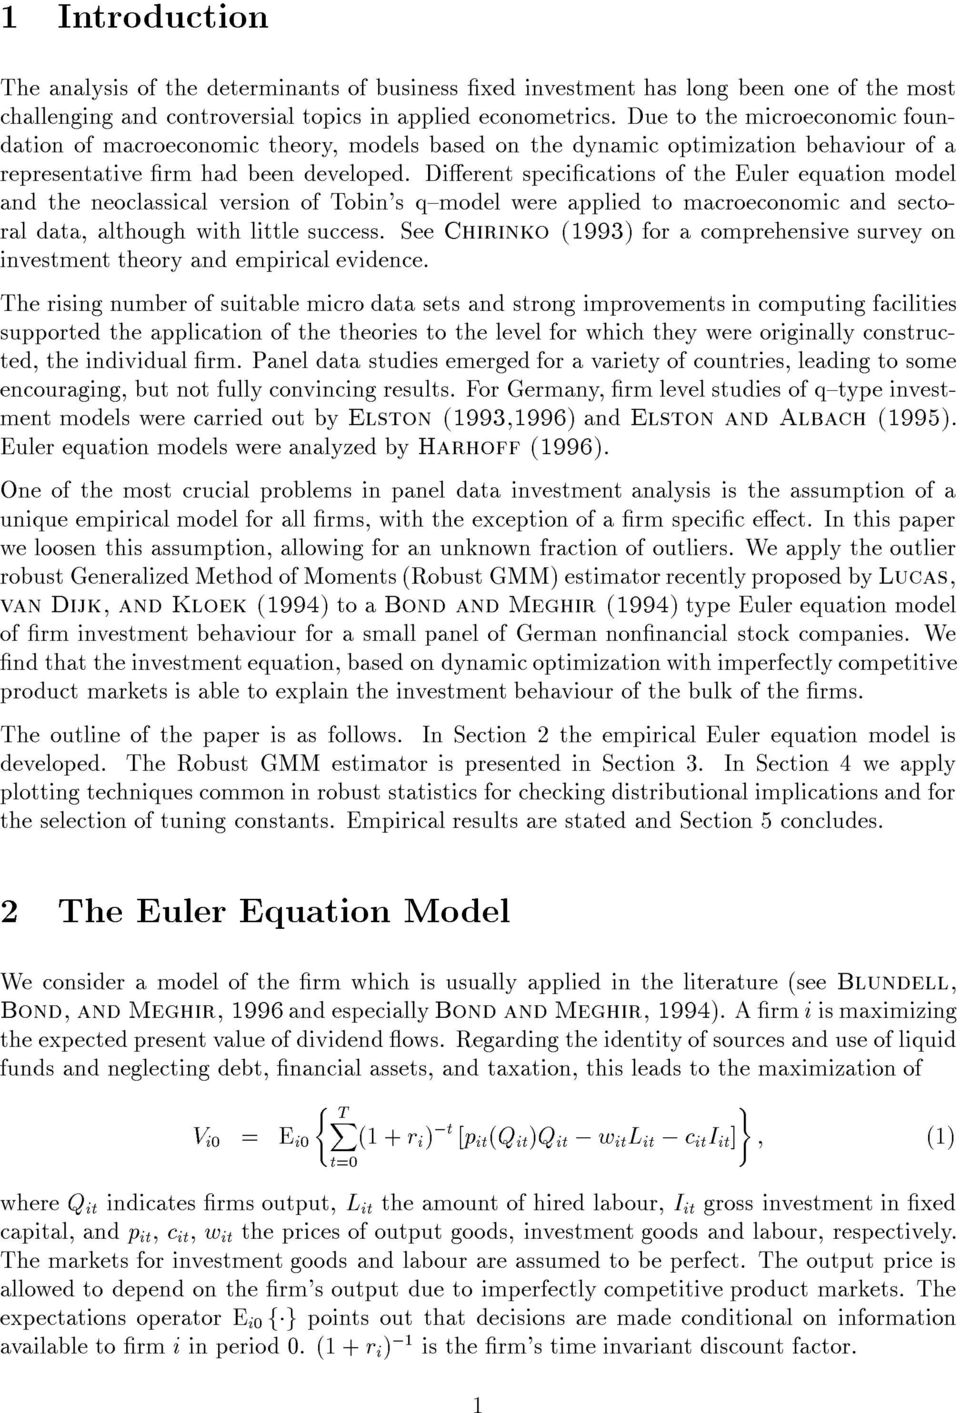 Dierent specications of the Euler equation model and the neoclassical version of Tobin's q{model were applied to macroeconomic and sectoral data, although with little success.